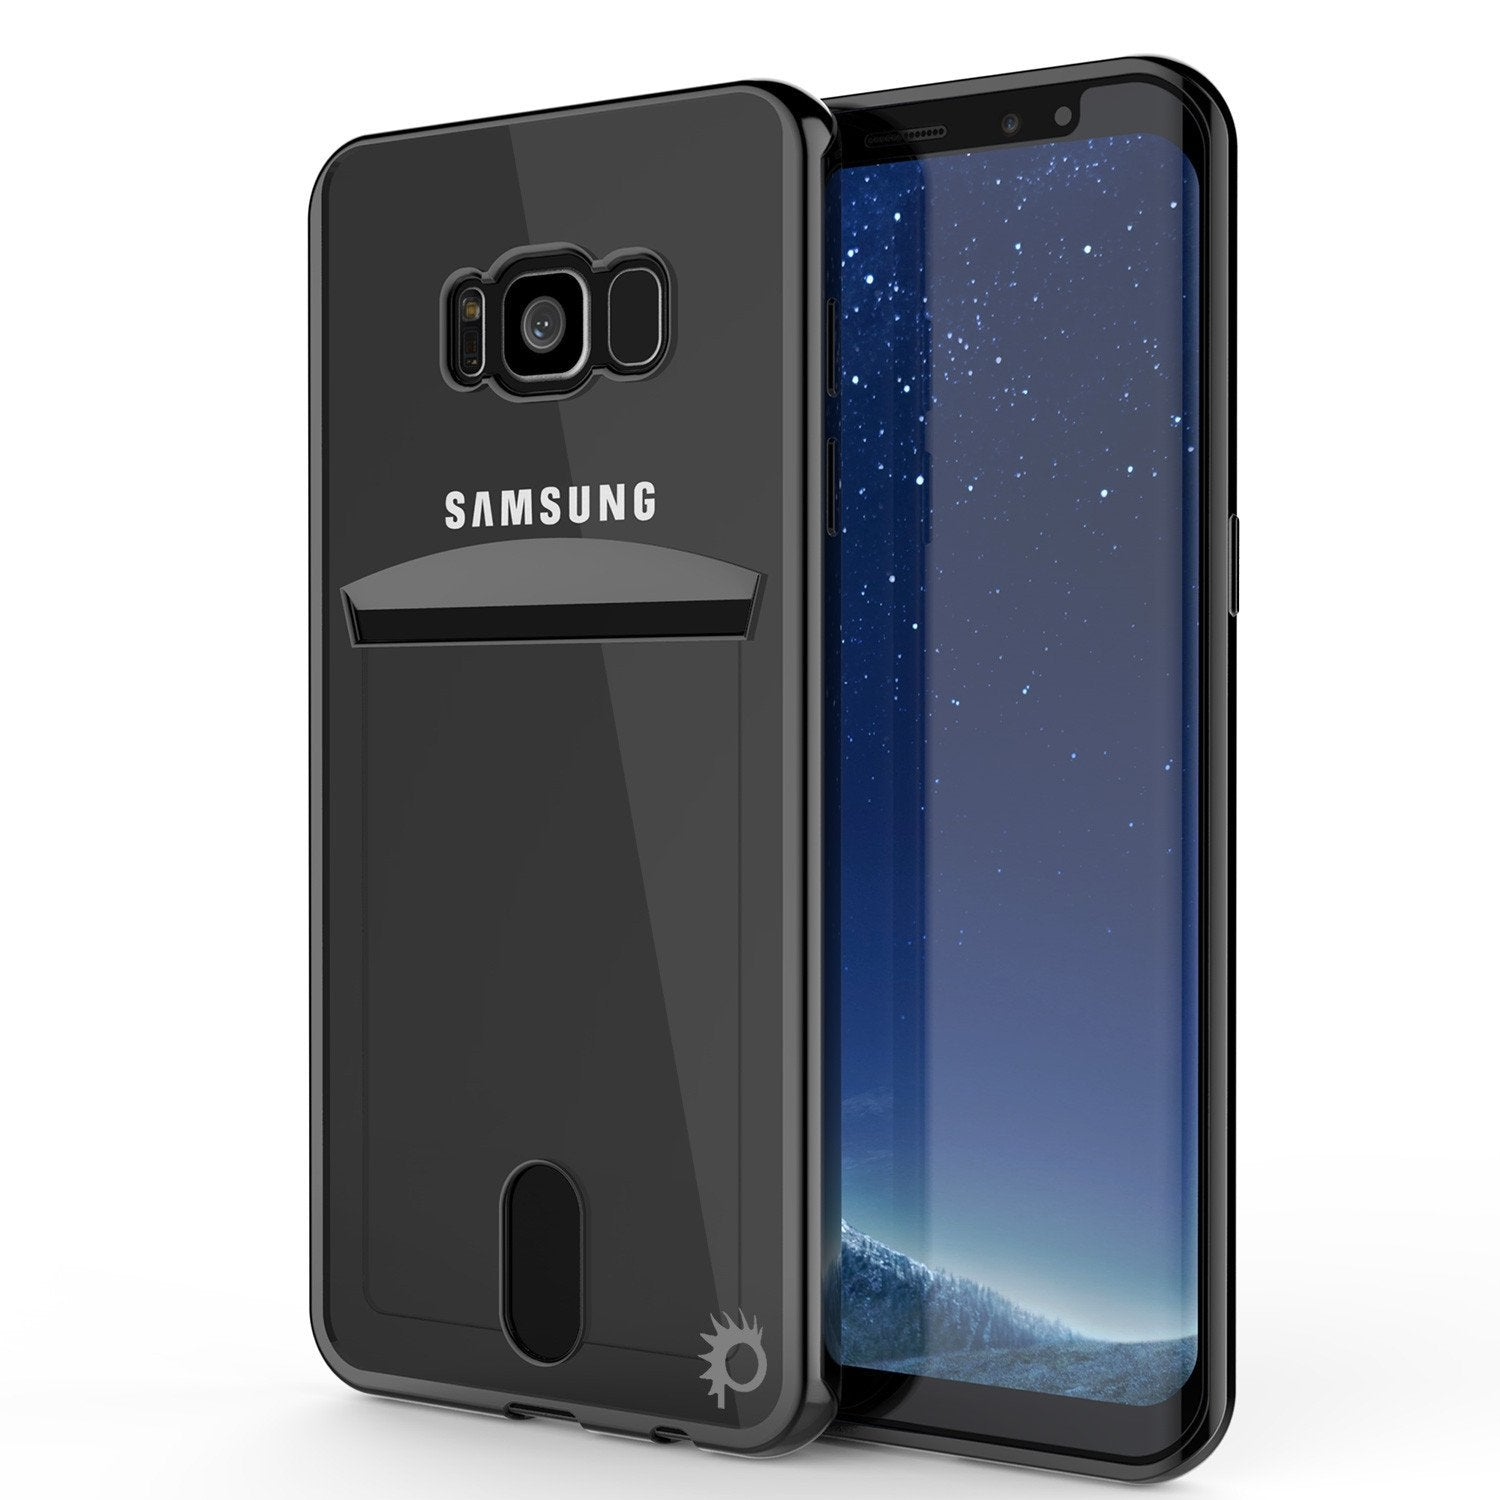 Galaxy S8 Case PUNKCASE LUCID black Series Armor Case Cover Ultra Fit